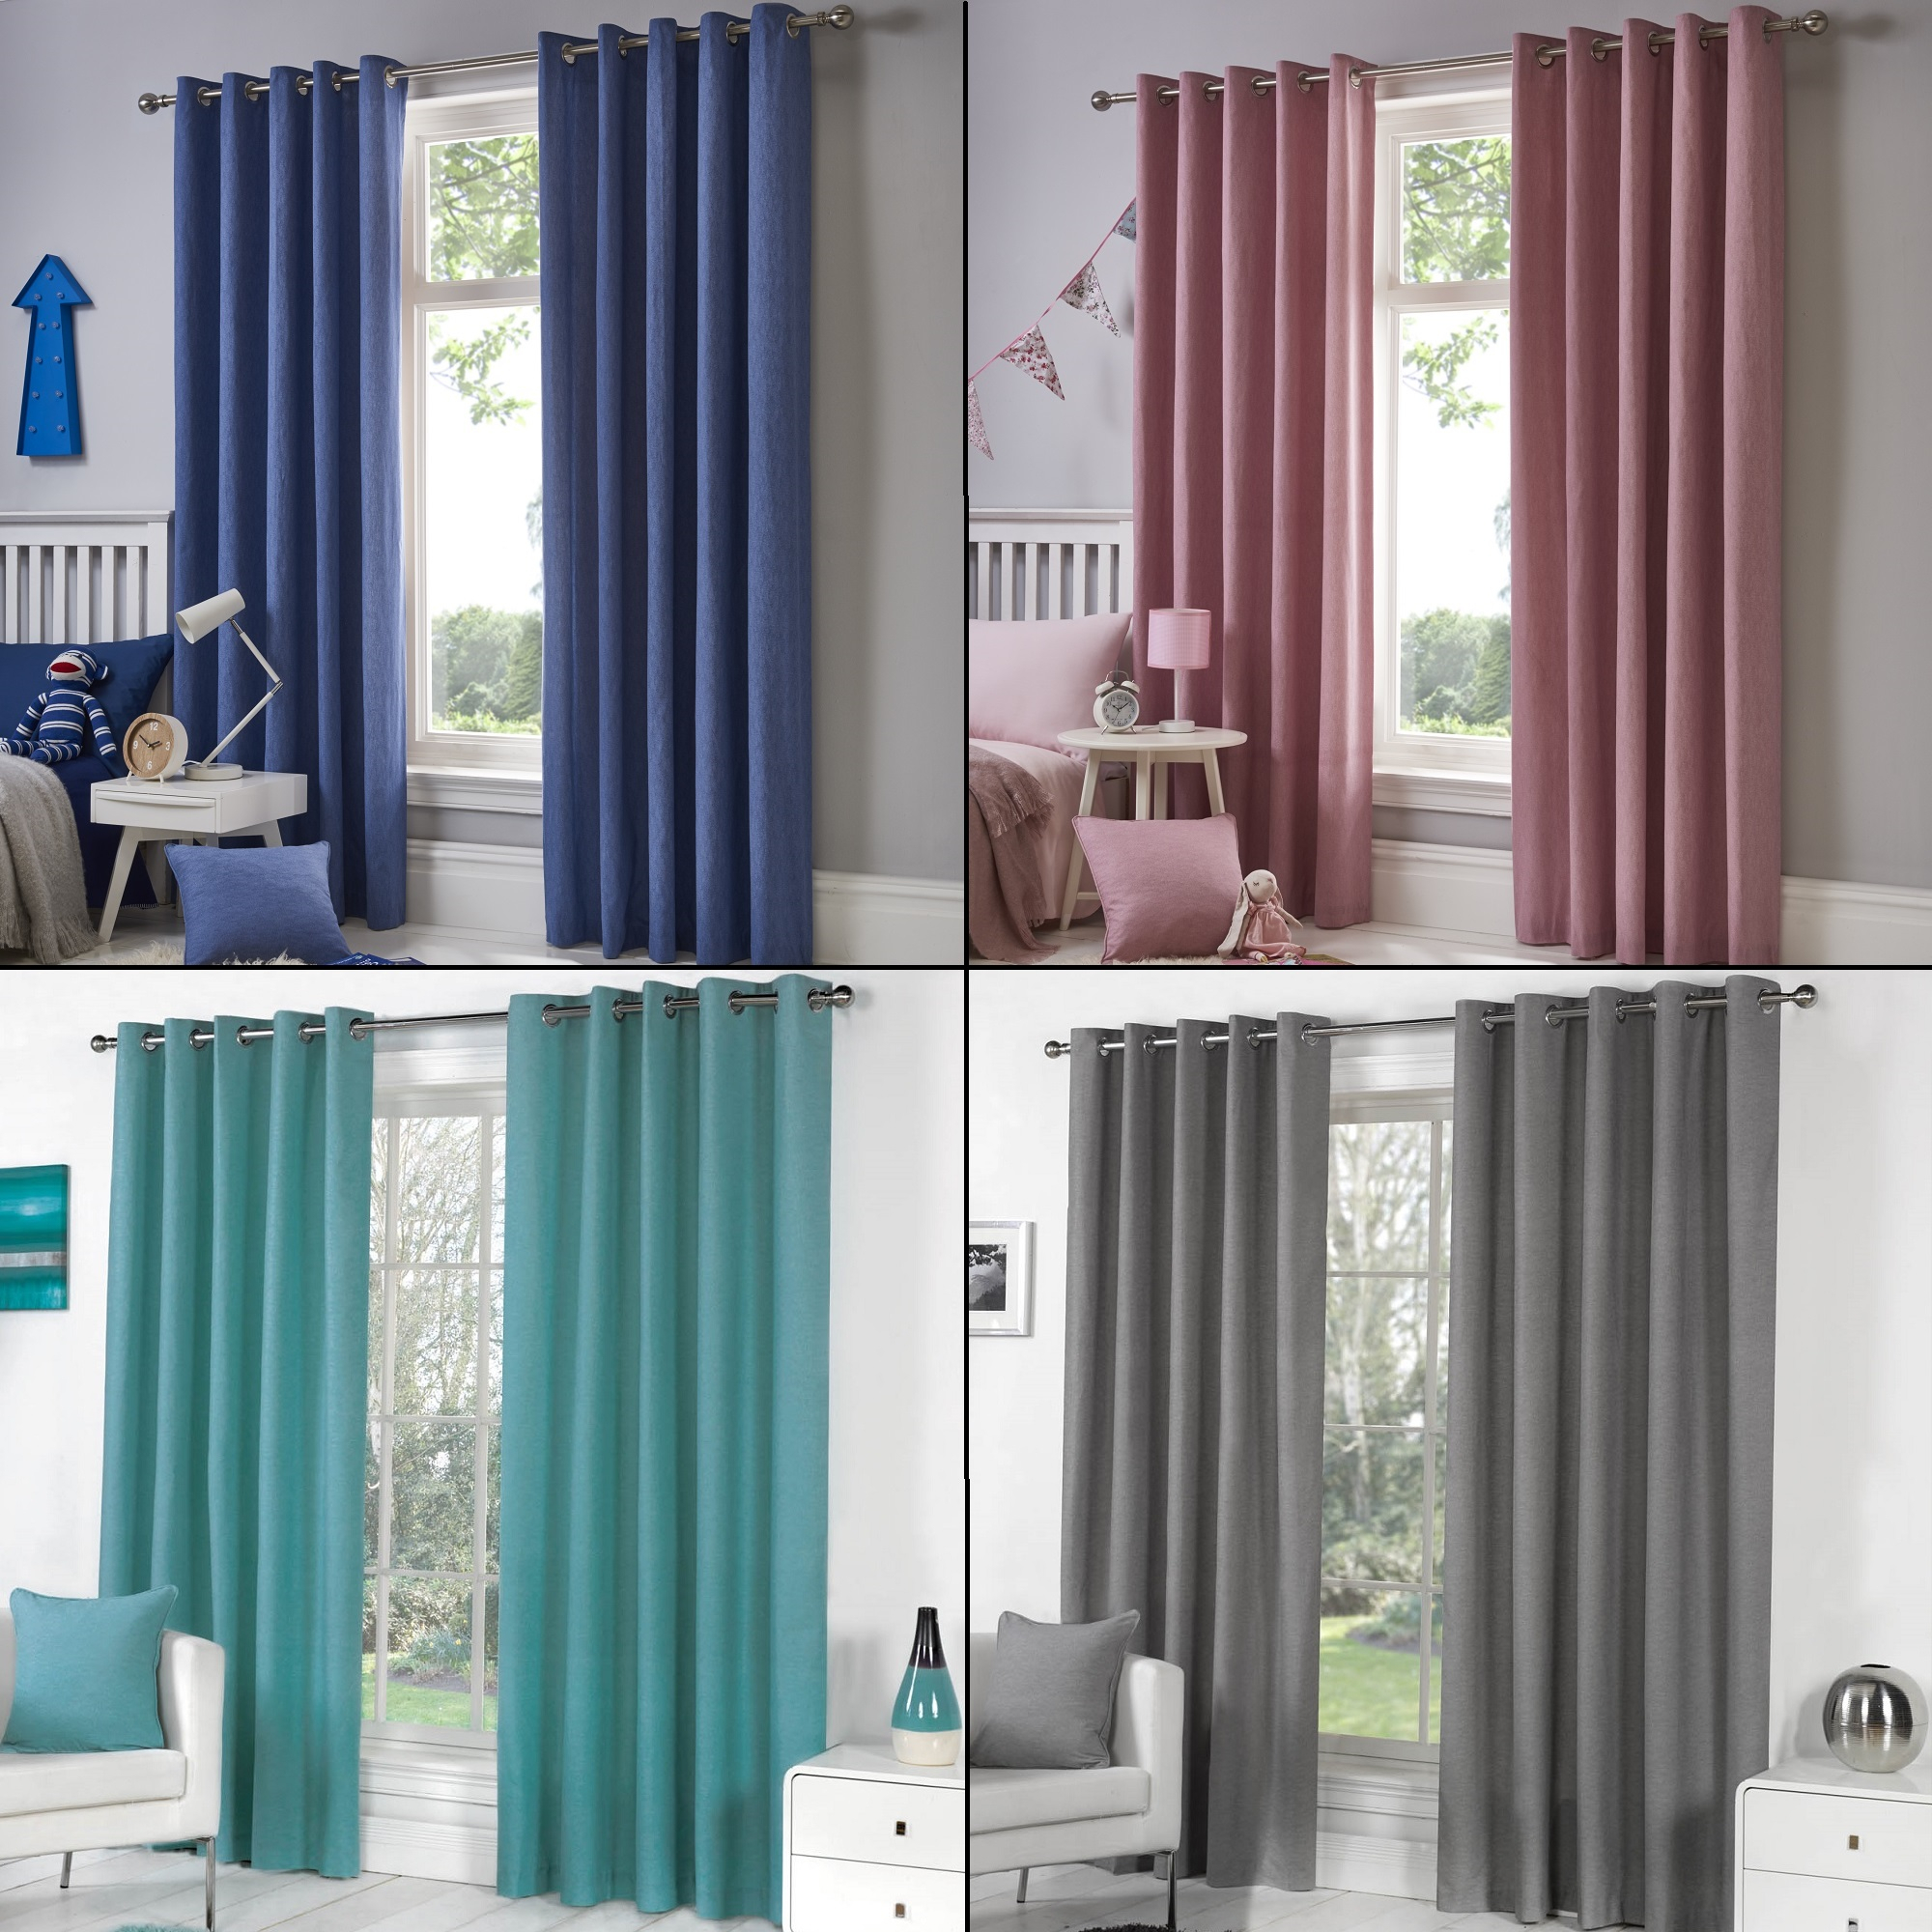 Details About Pair Of Sorbonne Solid Lined Curtain Panels – Grommet Top – Gray Red Blue Pink Within Solid Grommet Top Curtain Panel Pairs (View 8 of 30)